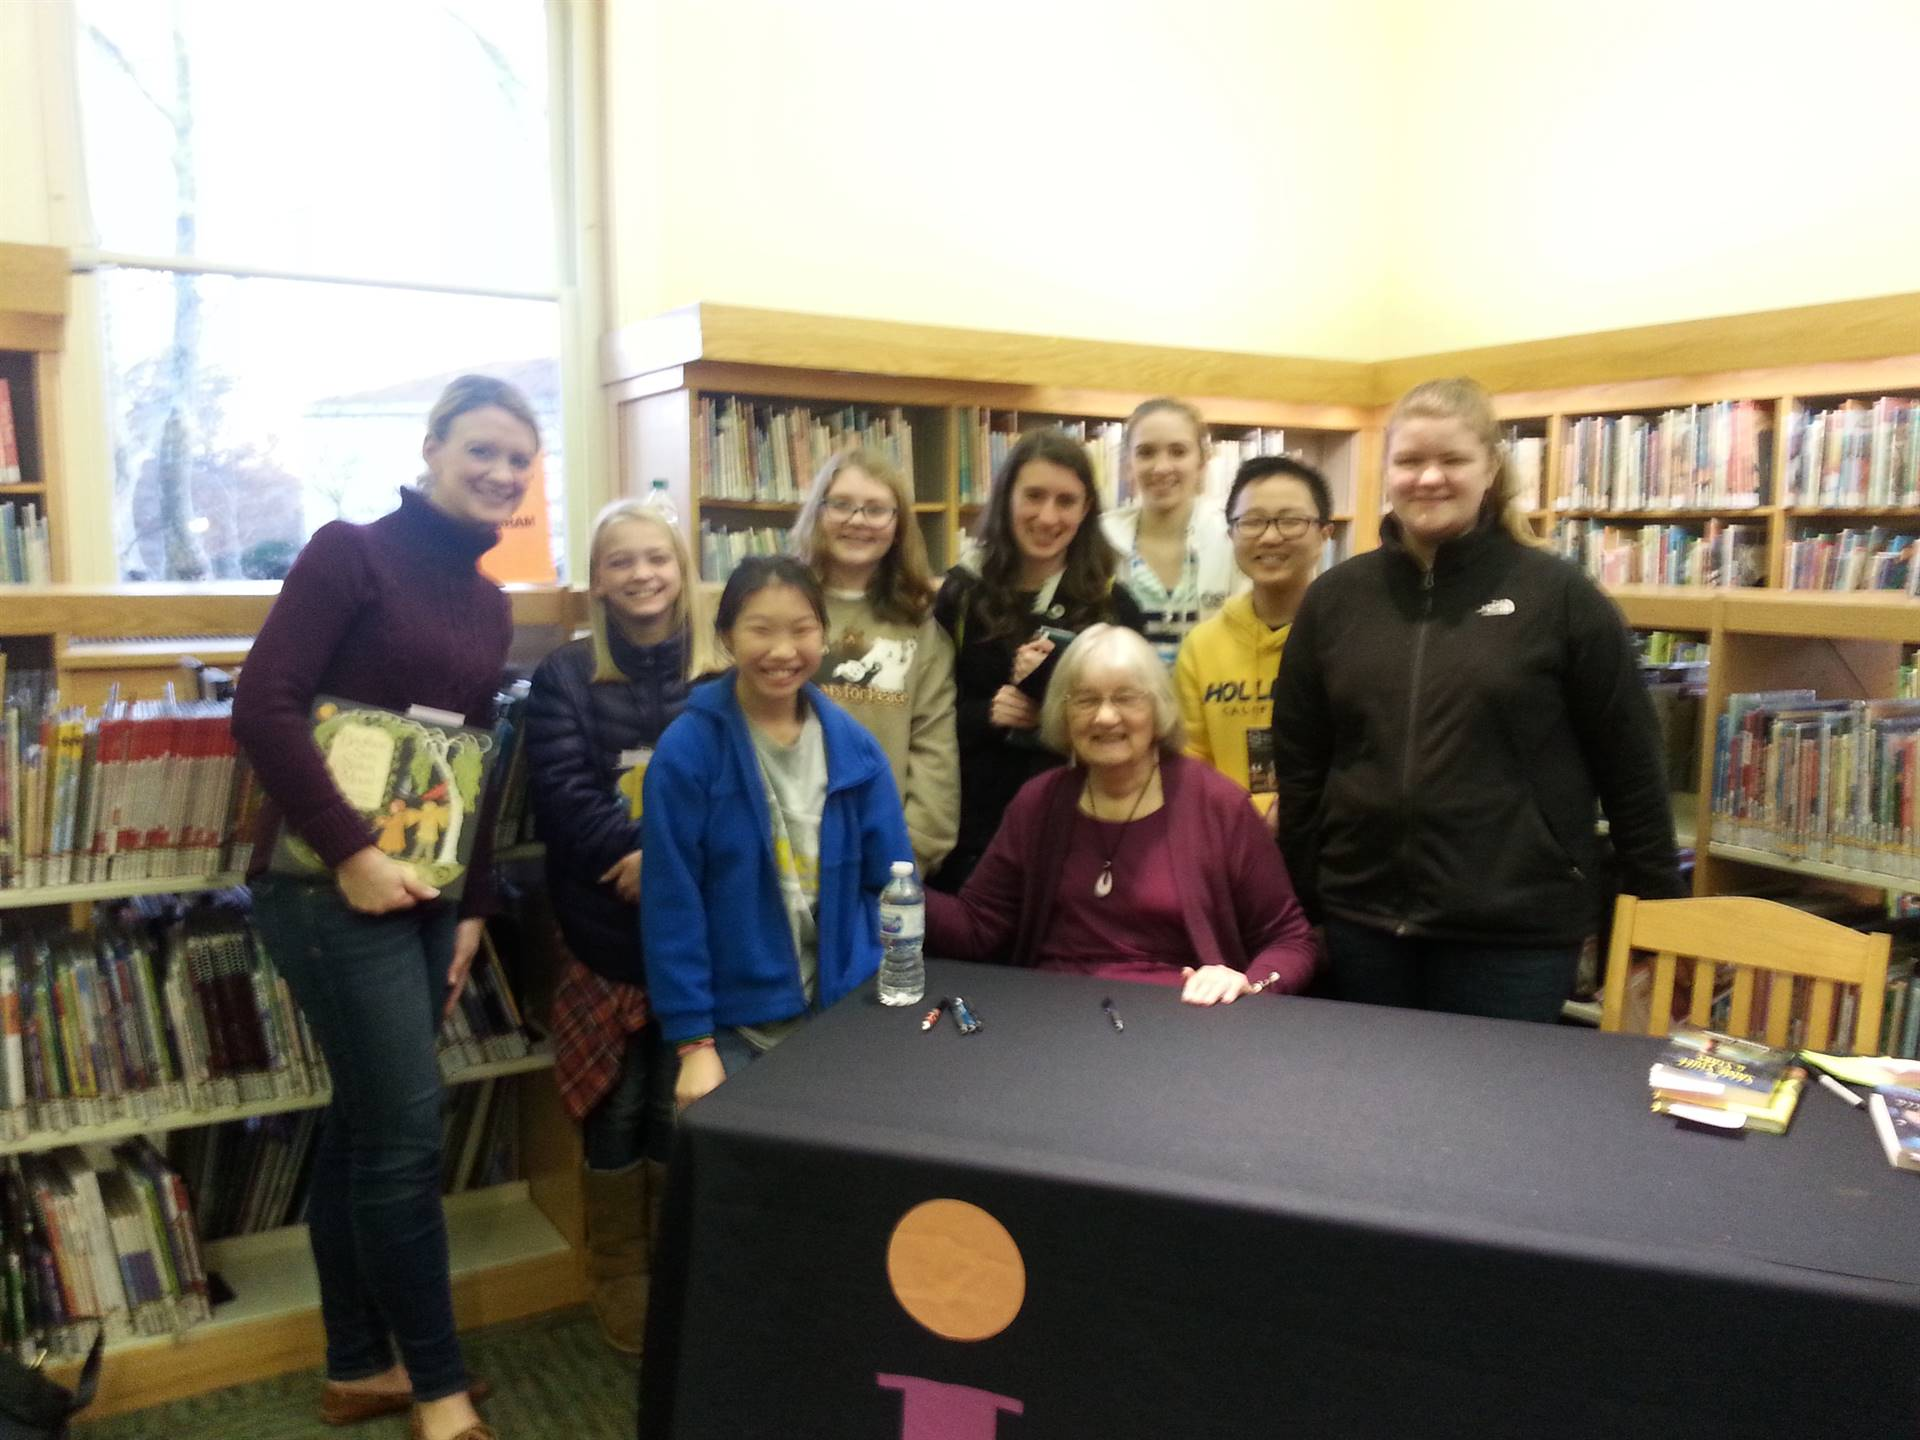 Katherine Paterson poses with students and a teacher.